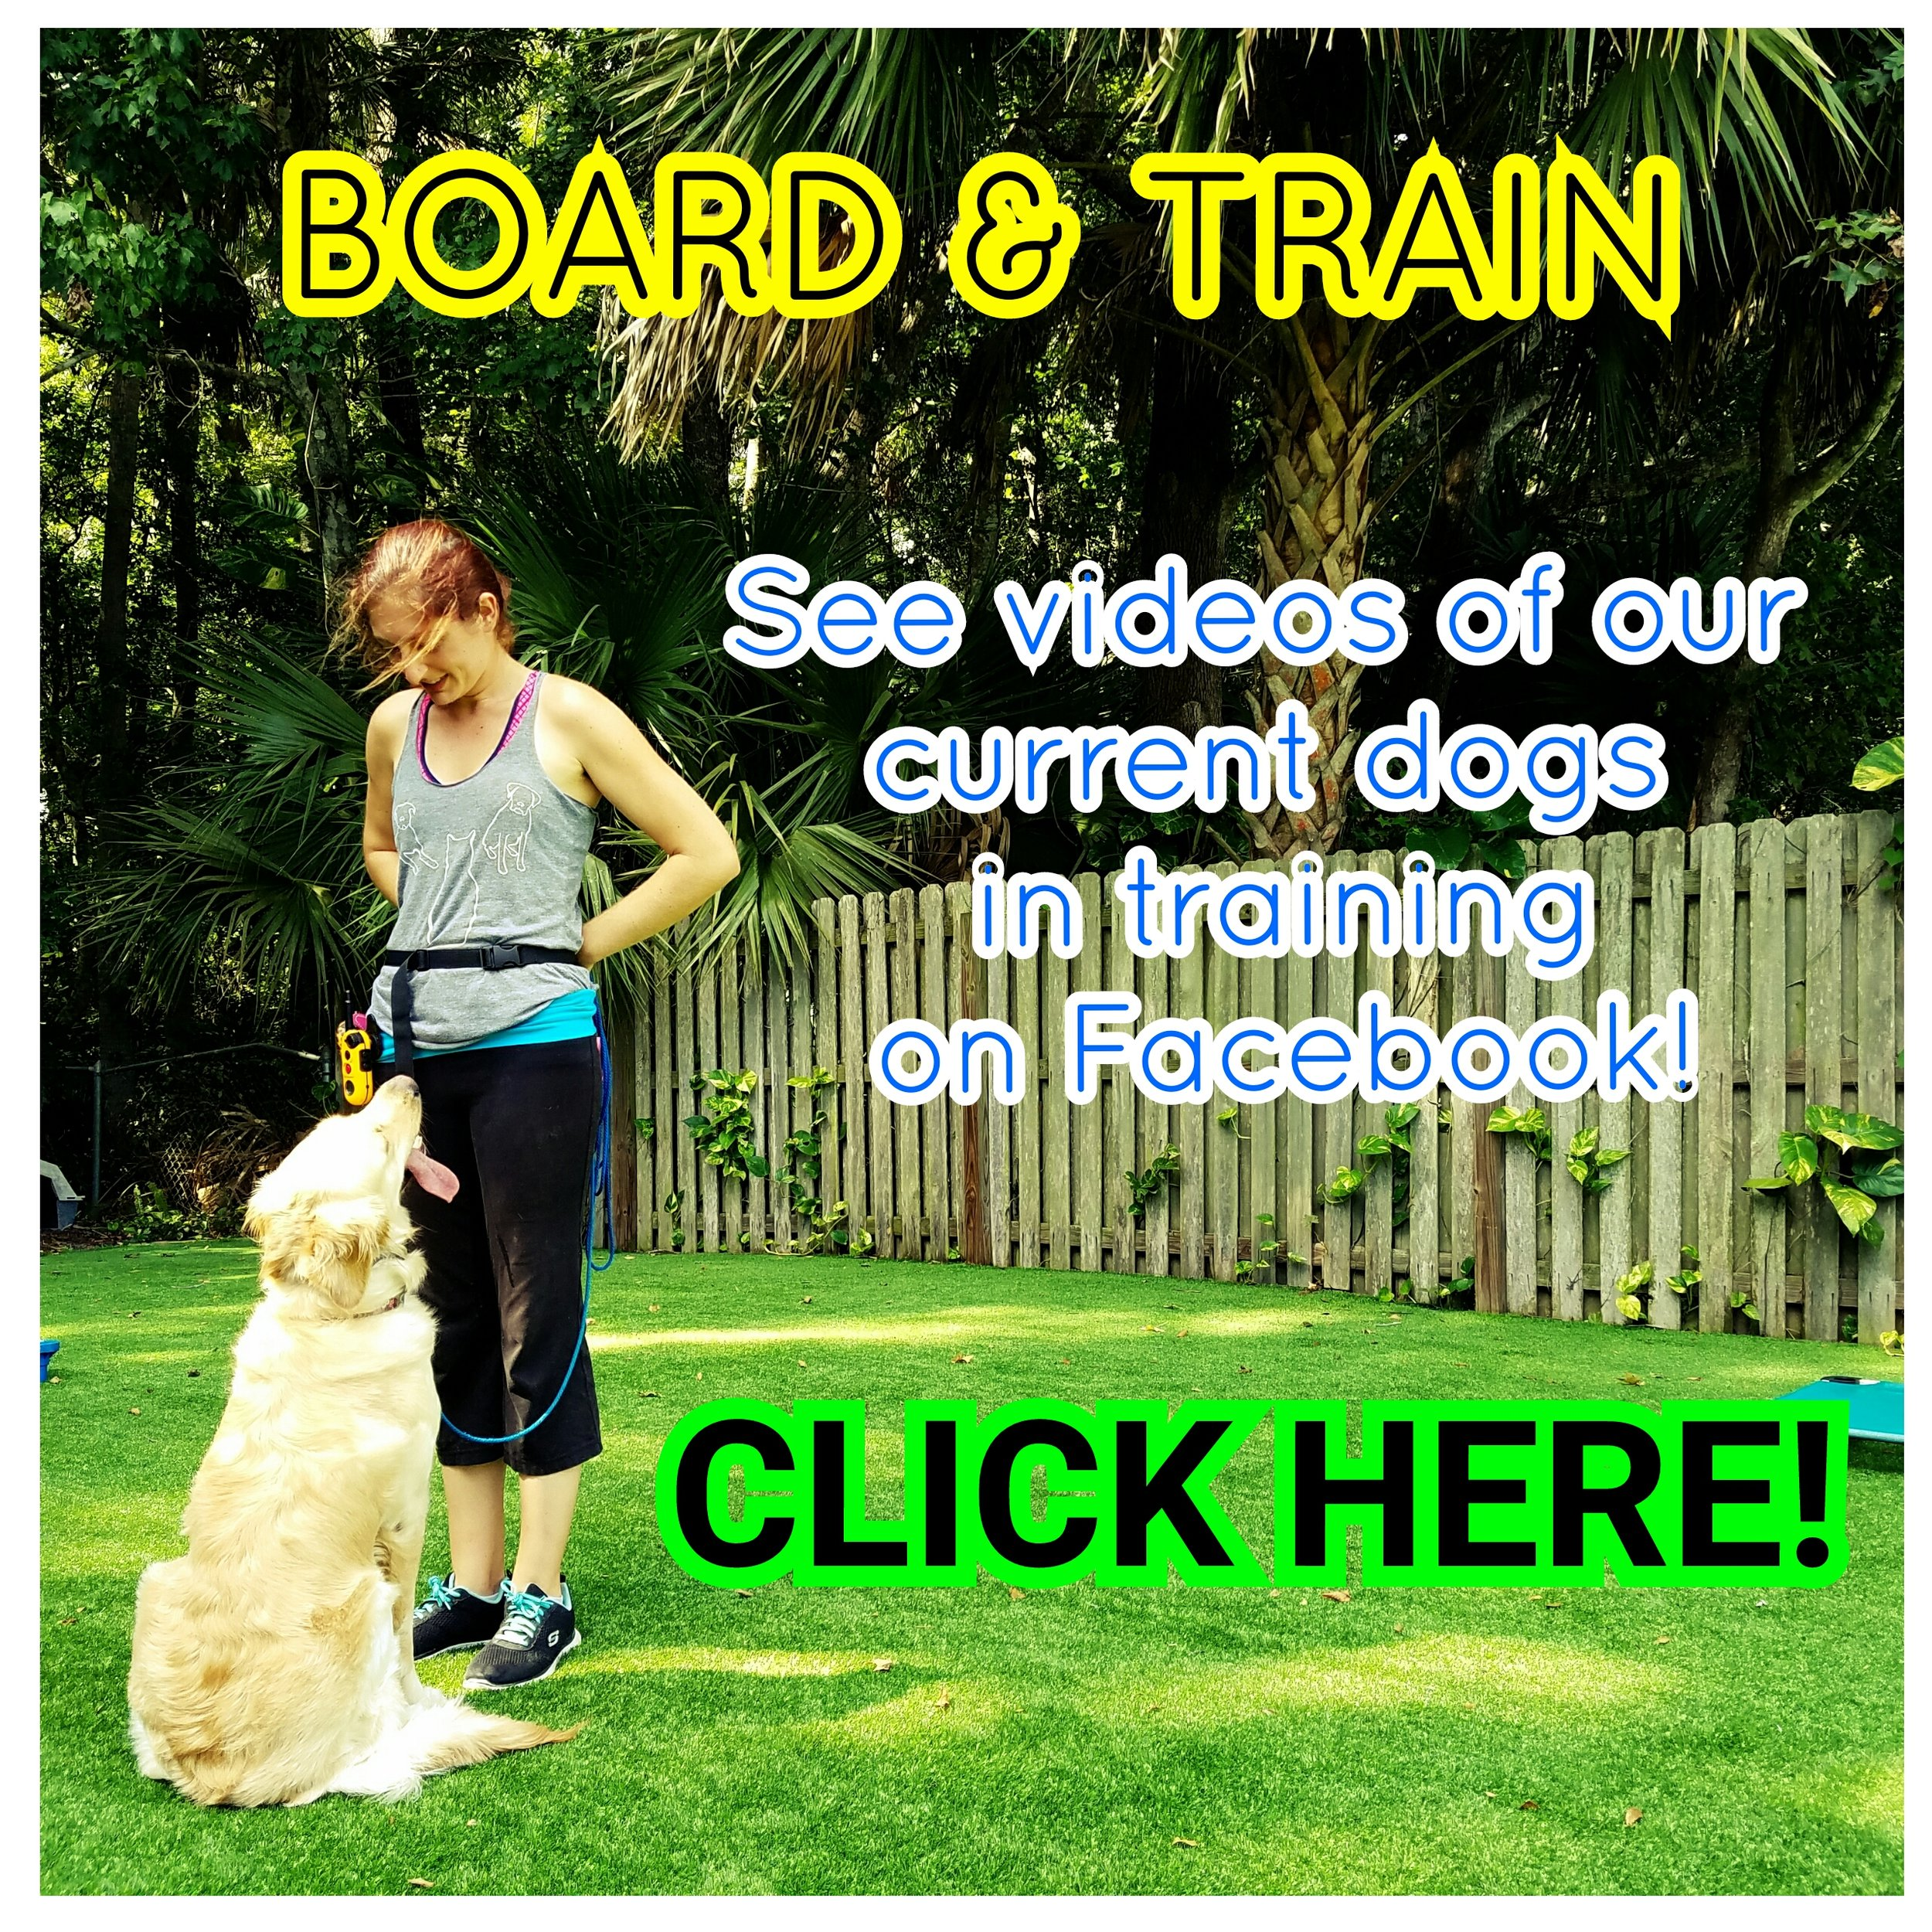 board and train orlando